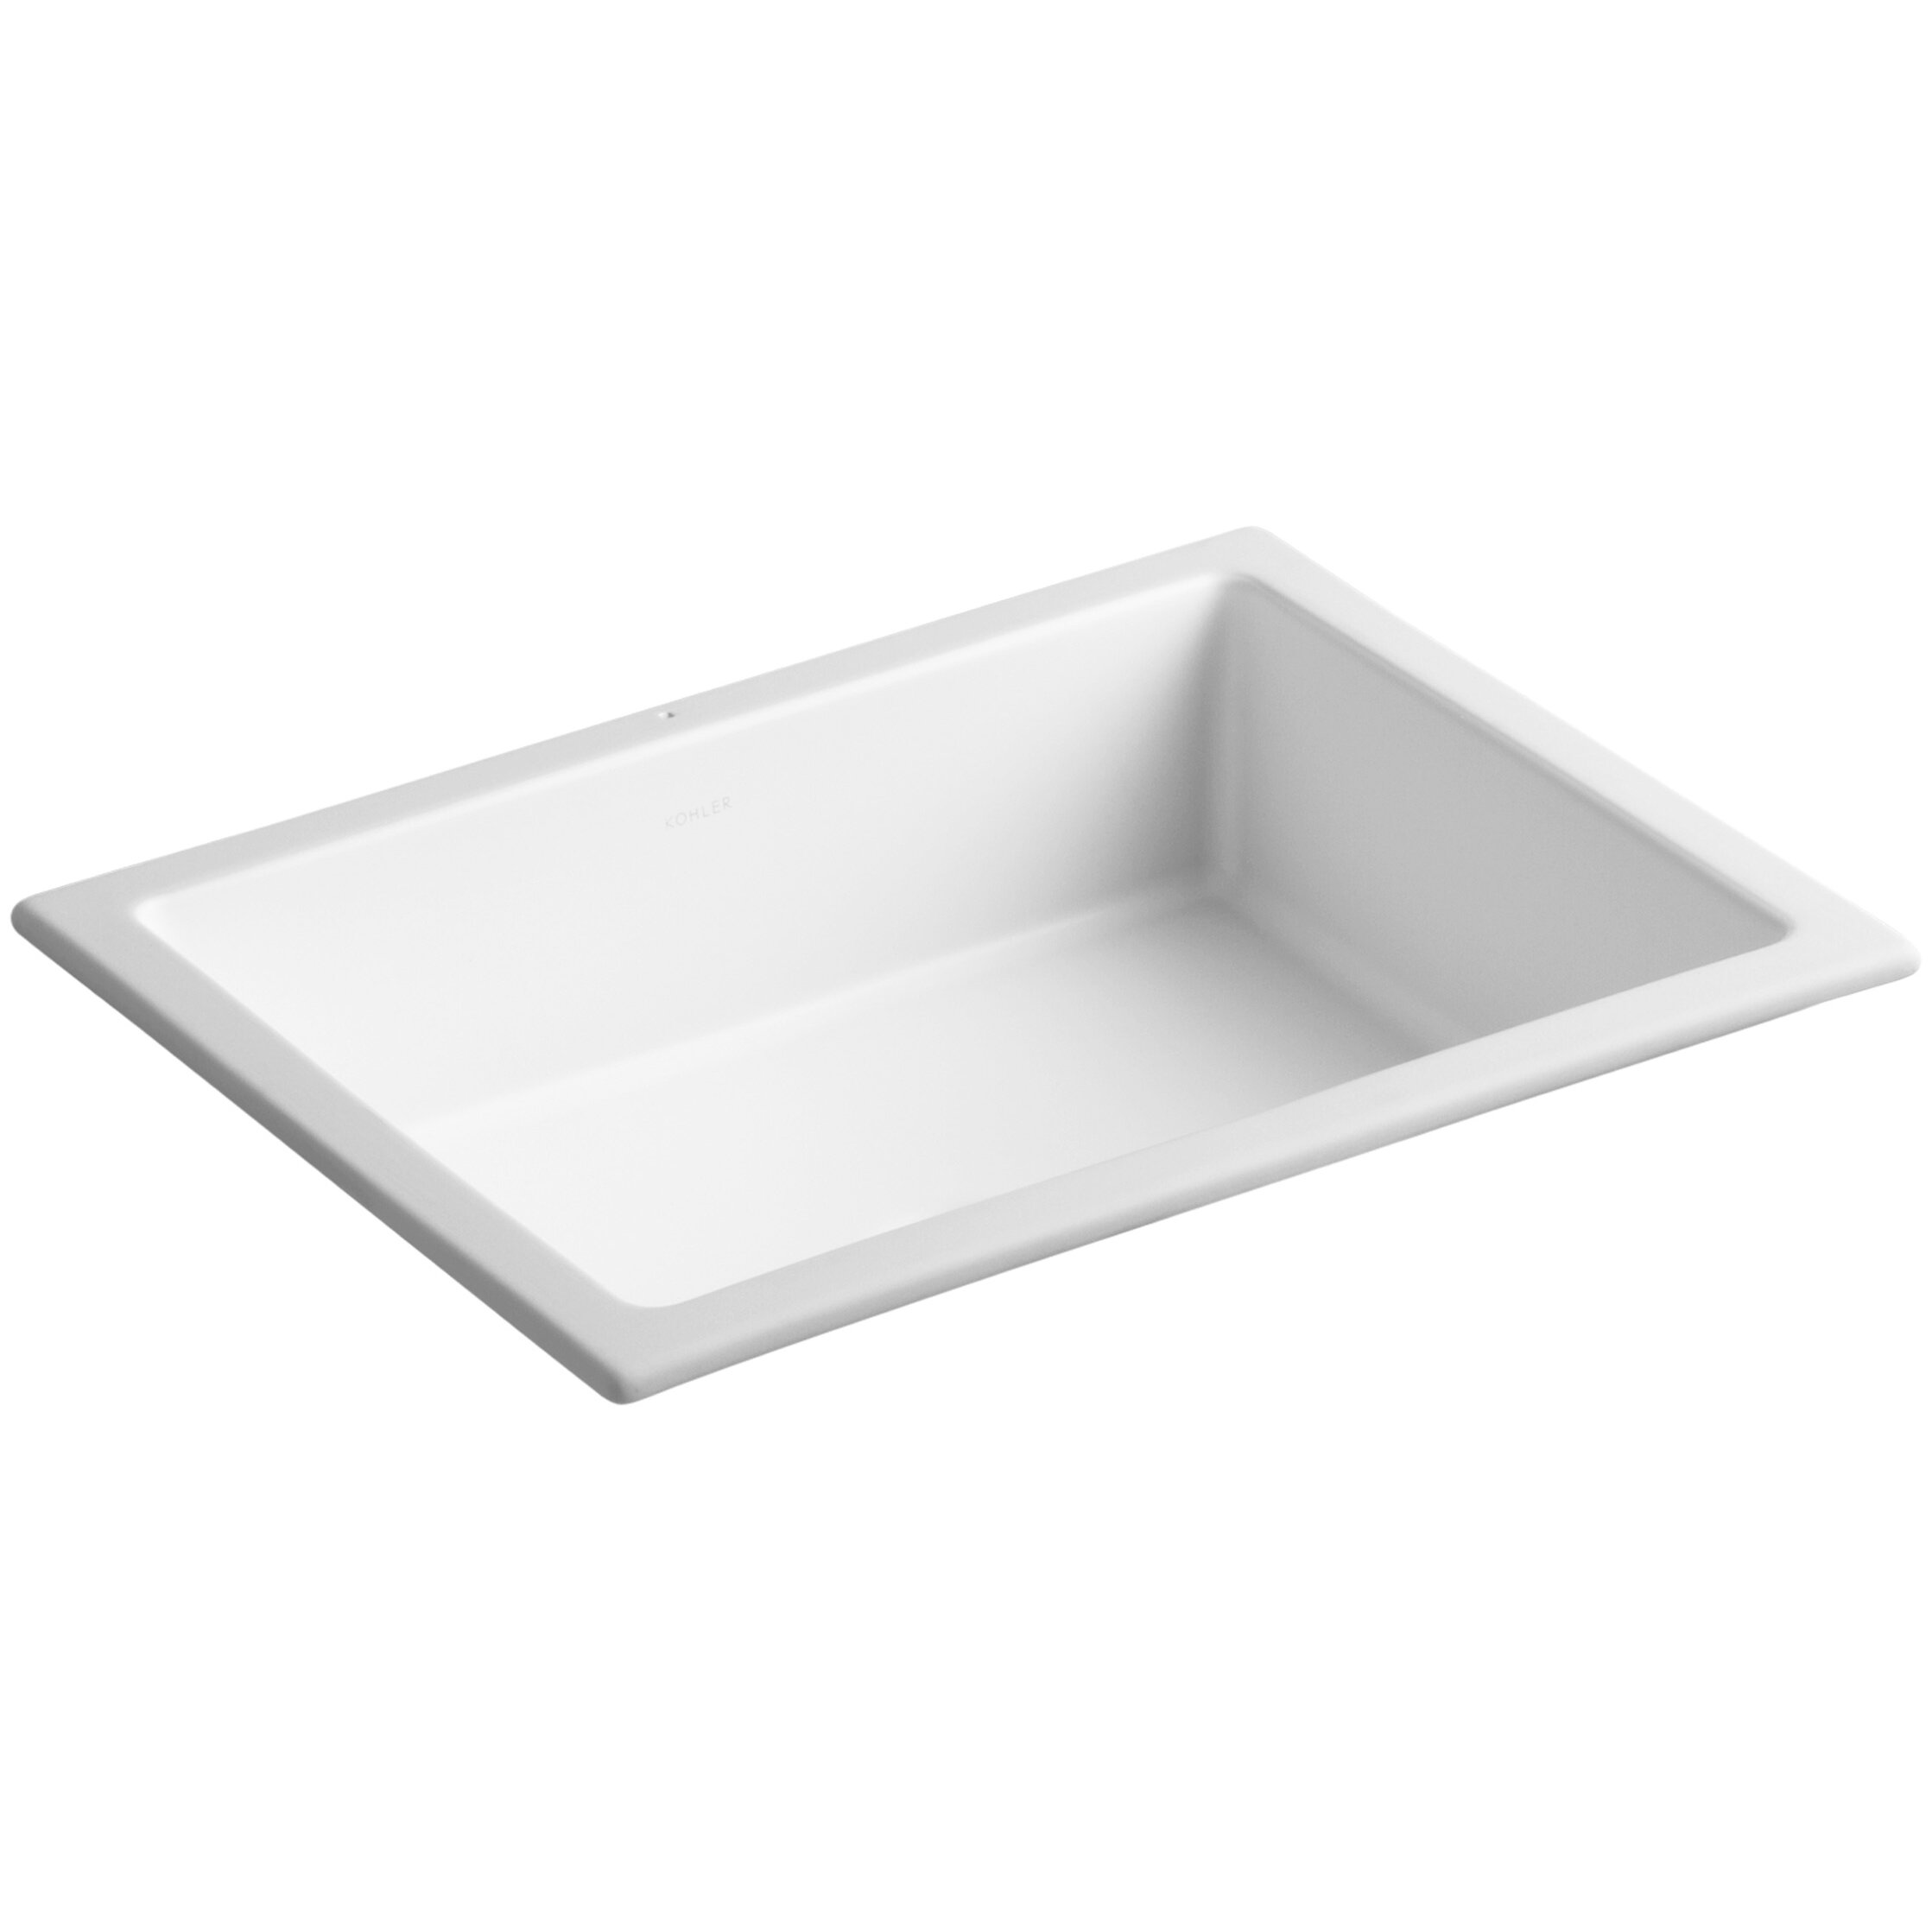 Square bathroom sinks - Kohler Verticyl Rectangular Undermount Bathroom Sink With Overflow